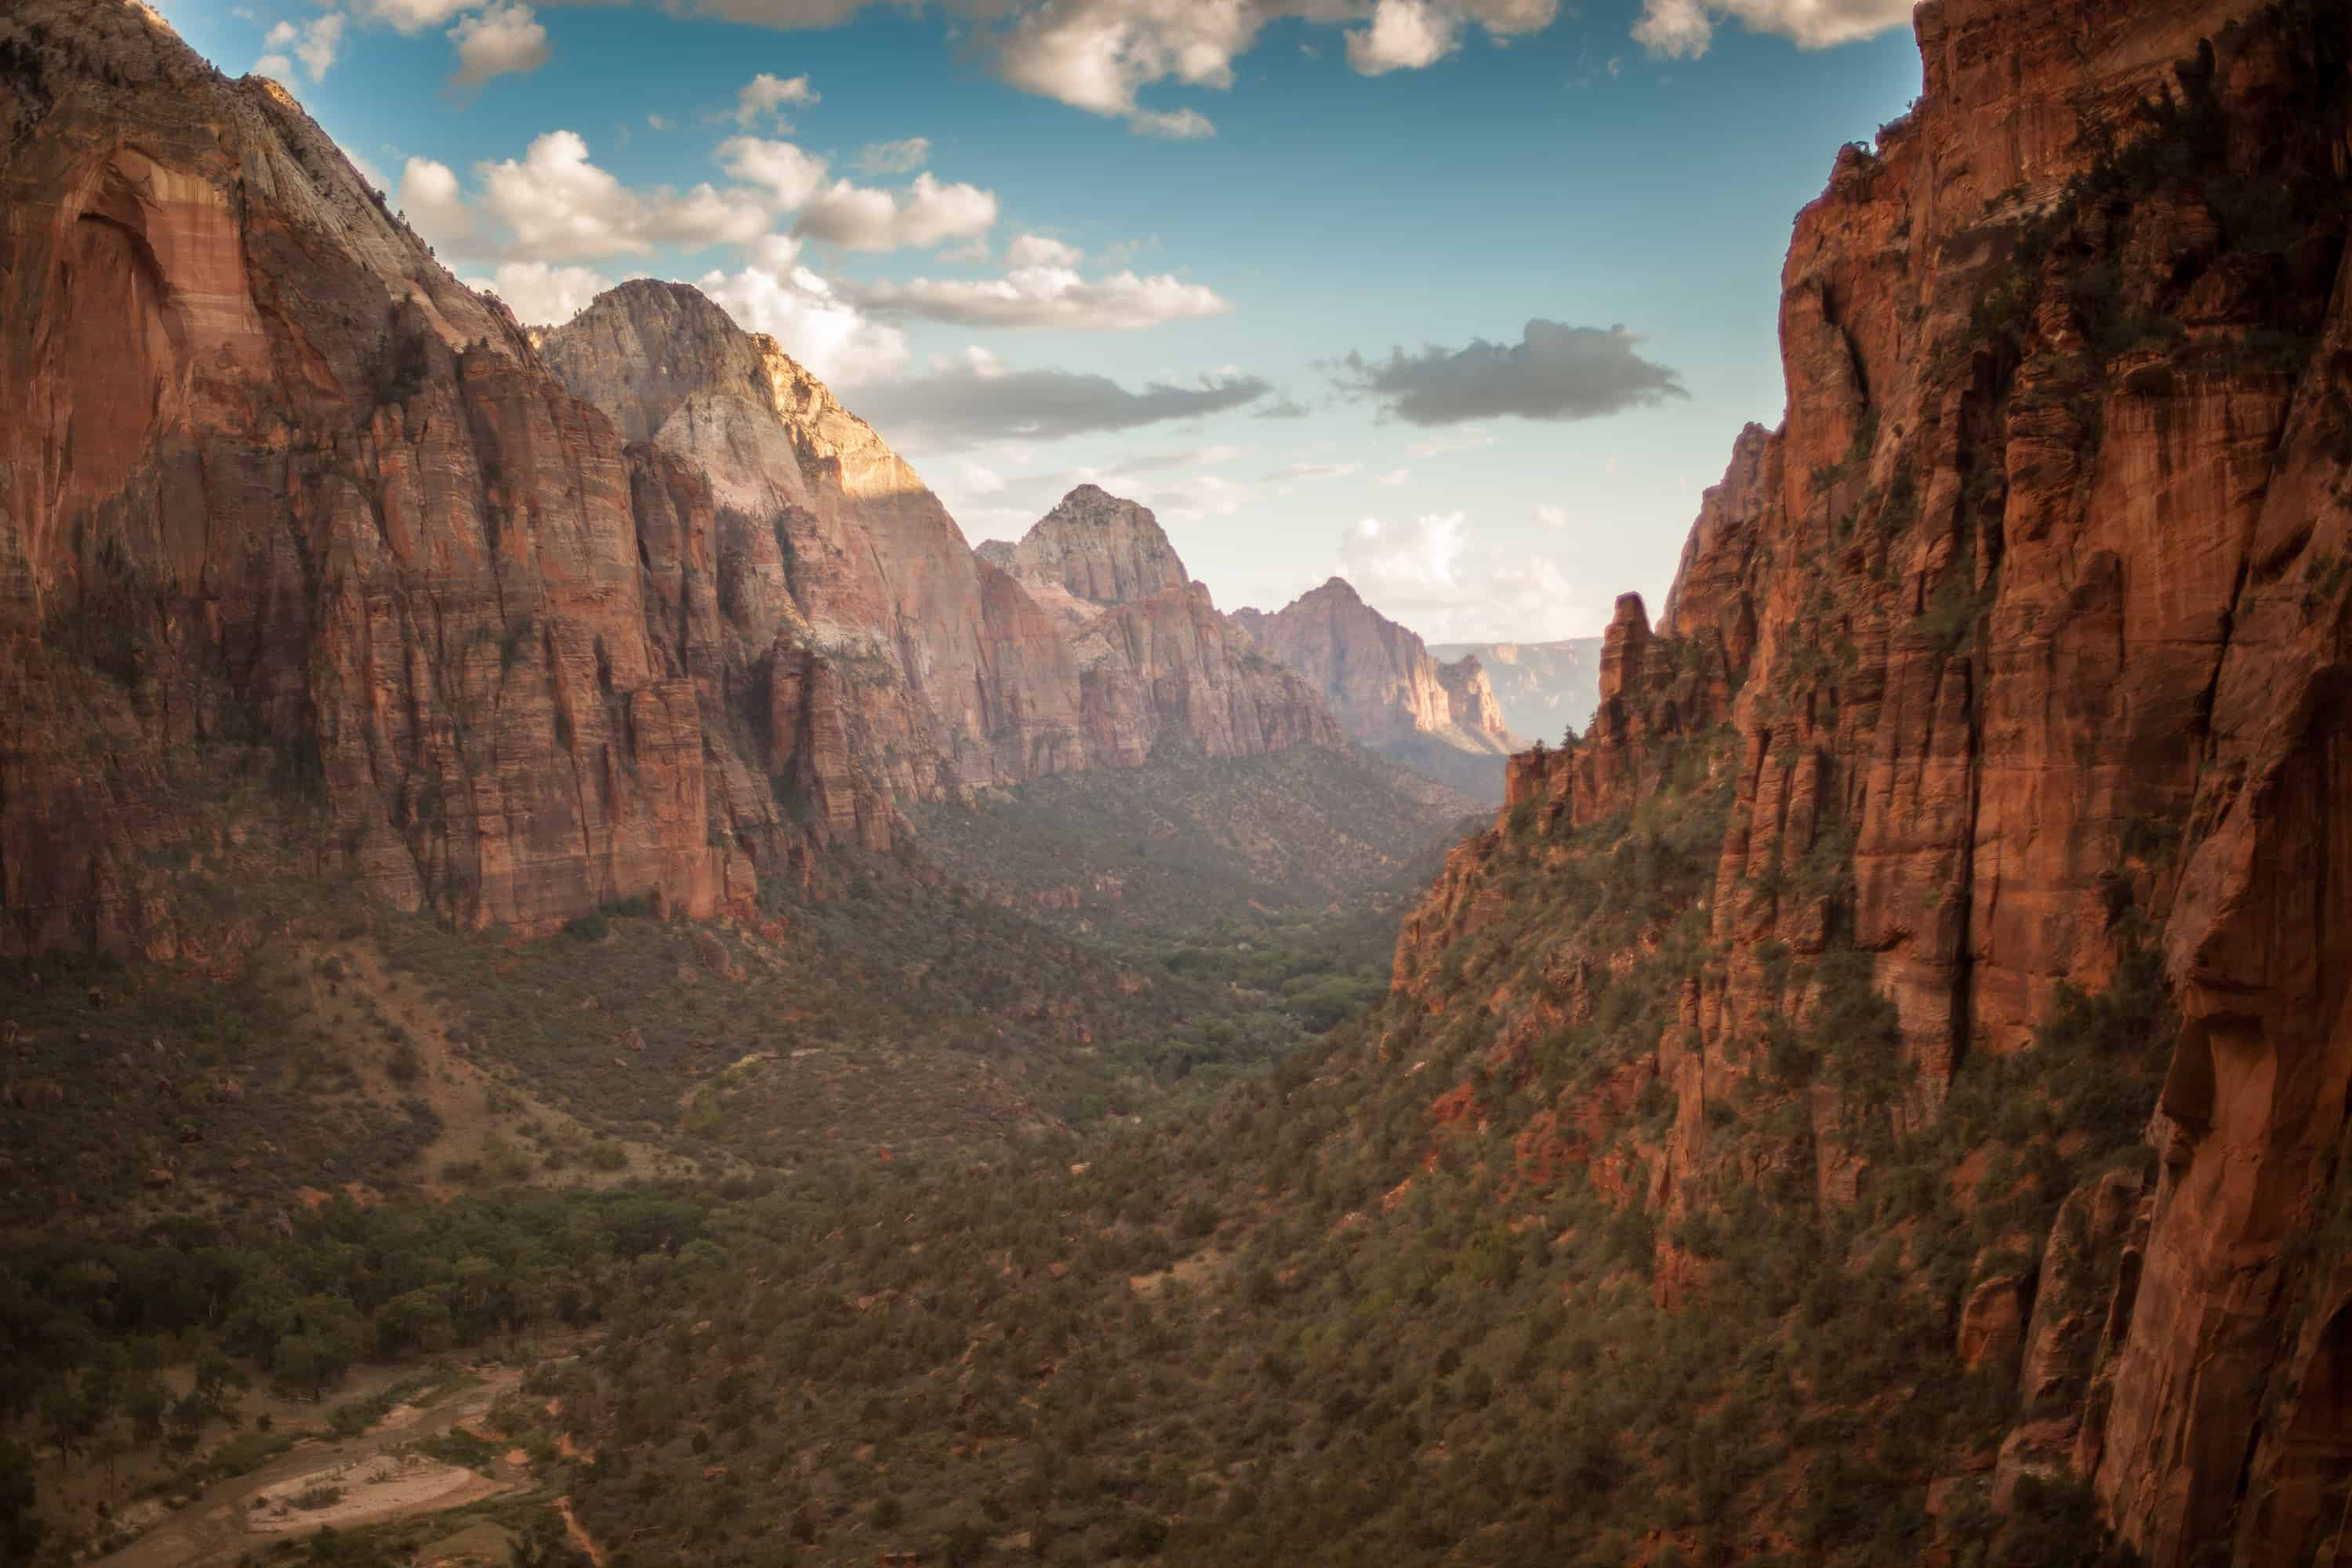 10 of the Best Hiking Trails in Zion National Park